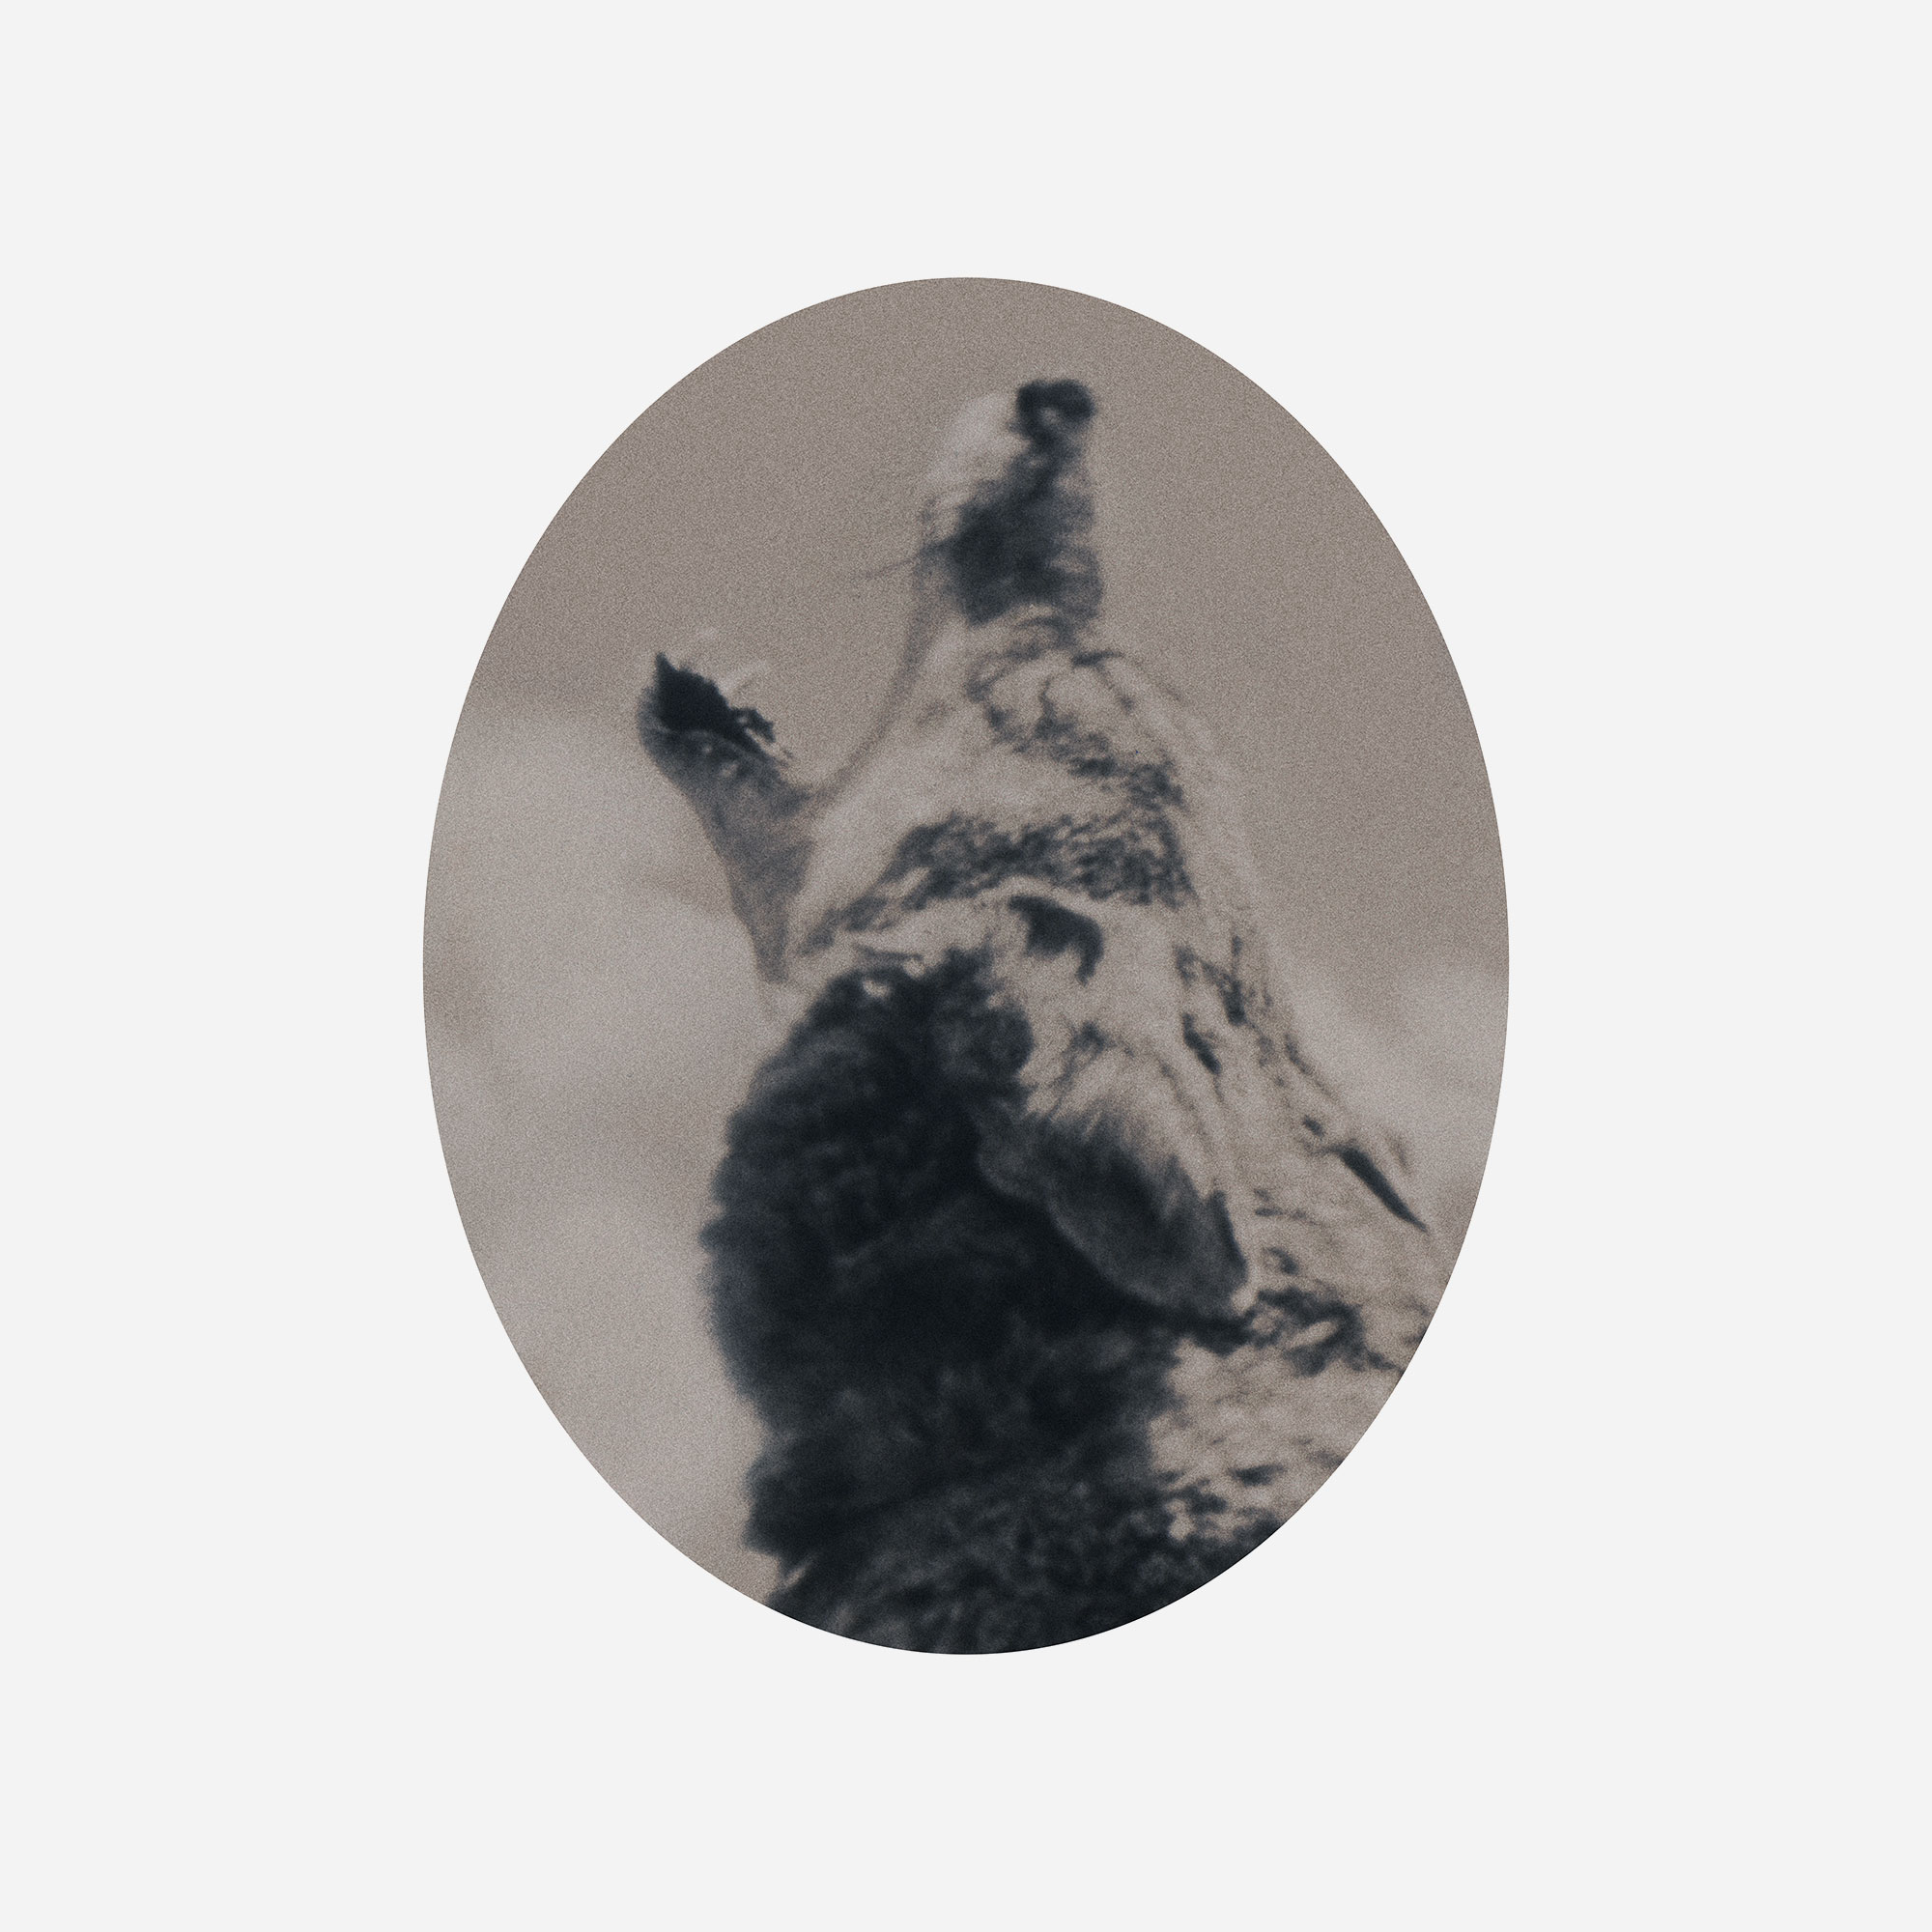 Art, Gæst No. 10, Canis lupus, 2012